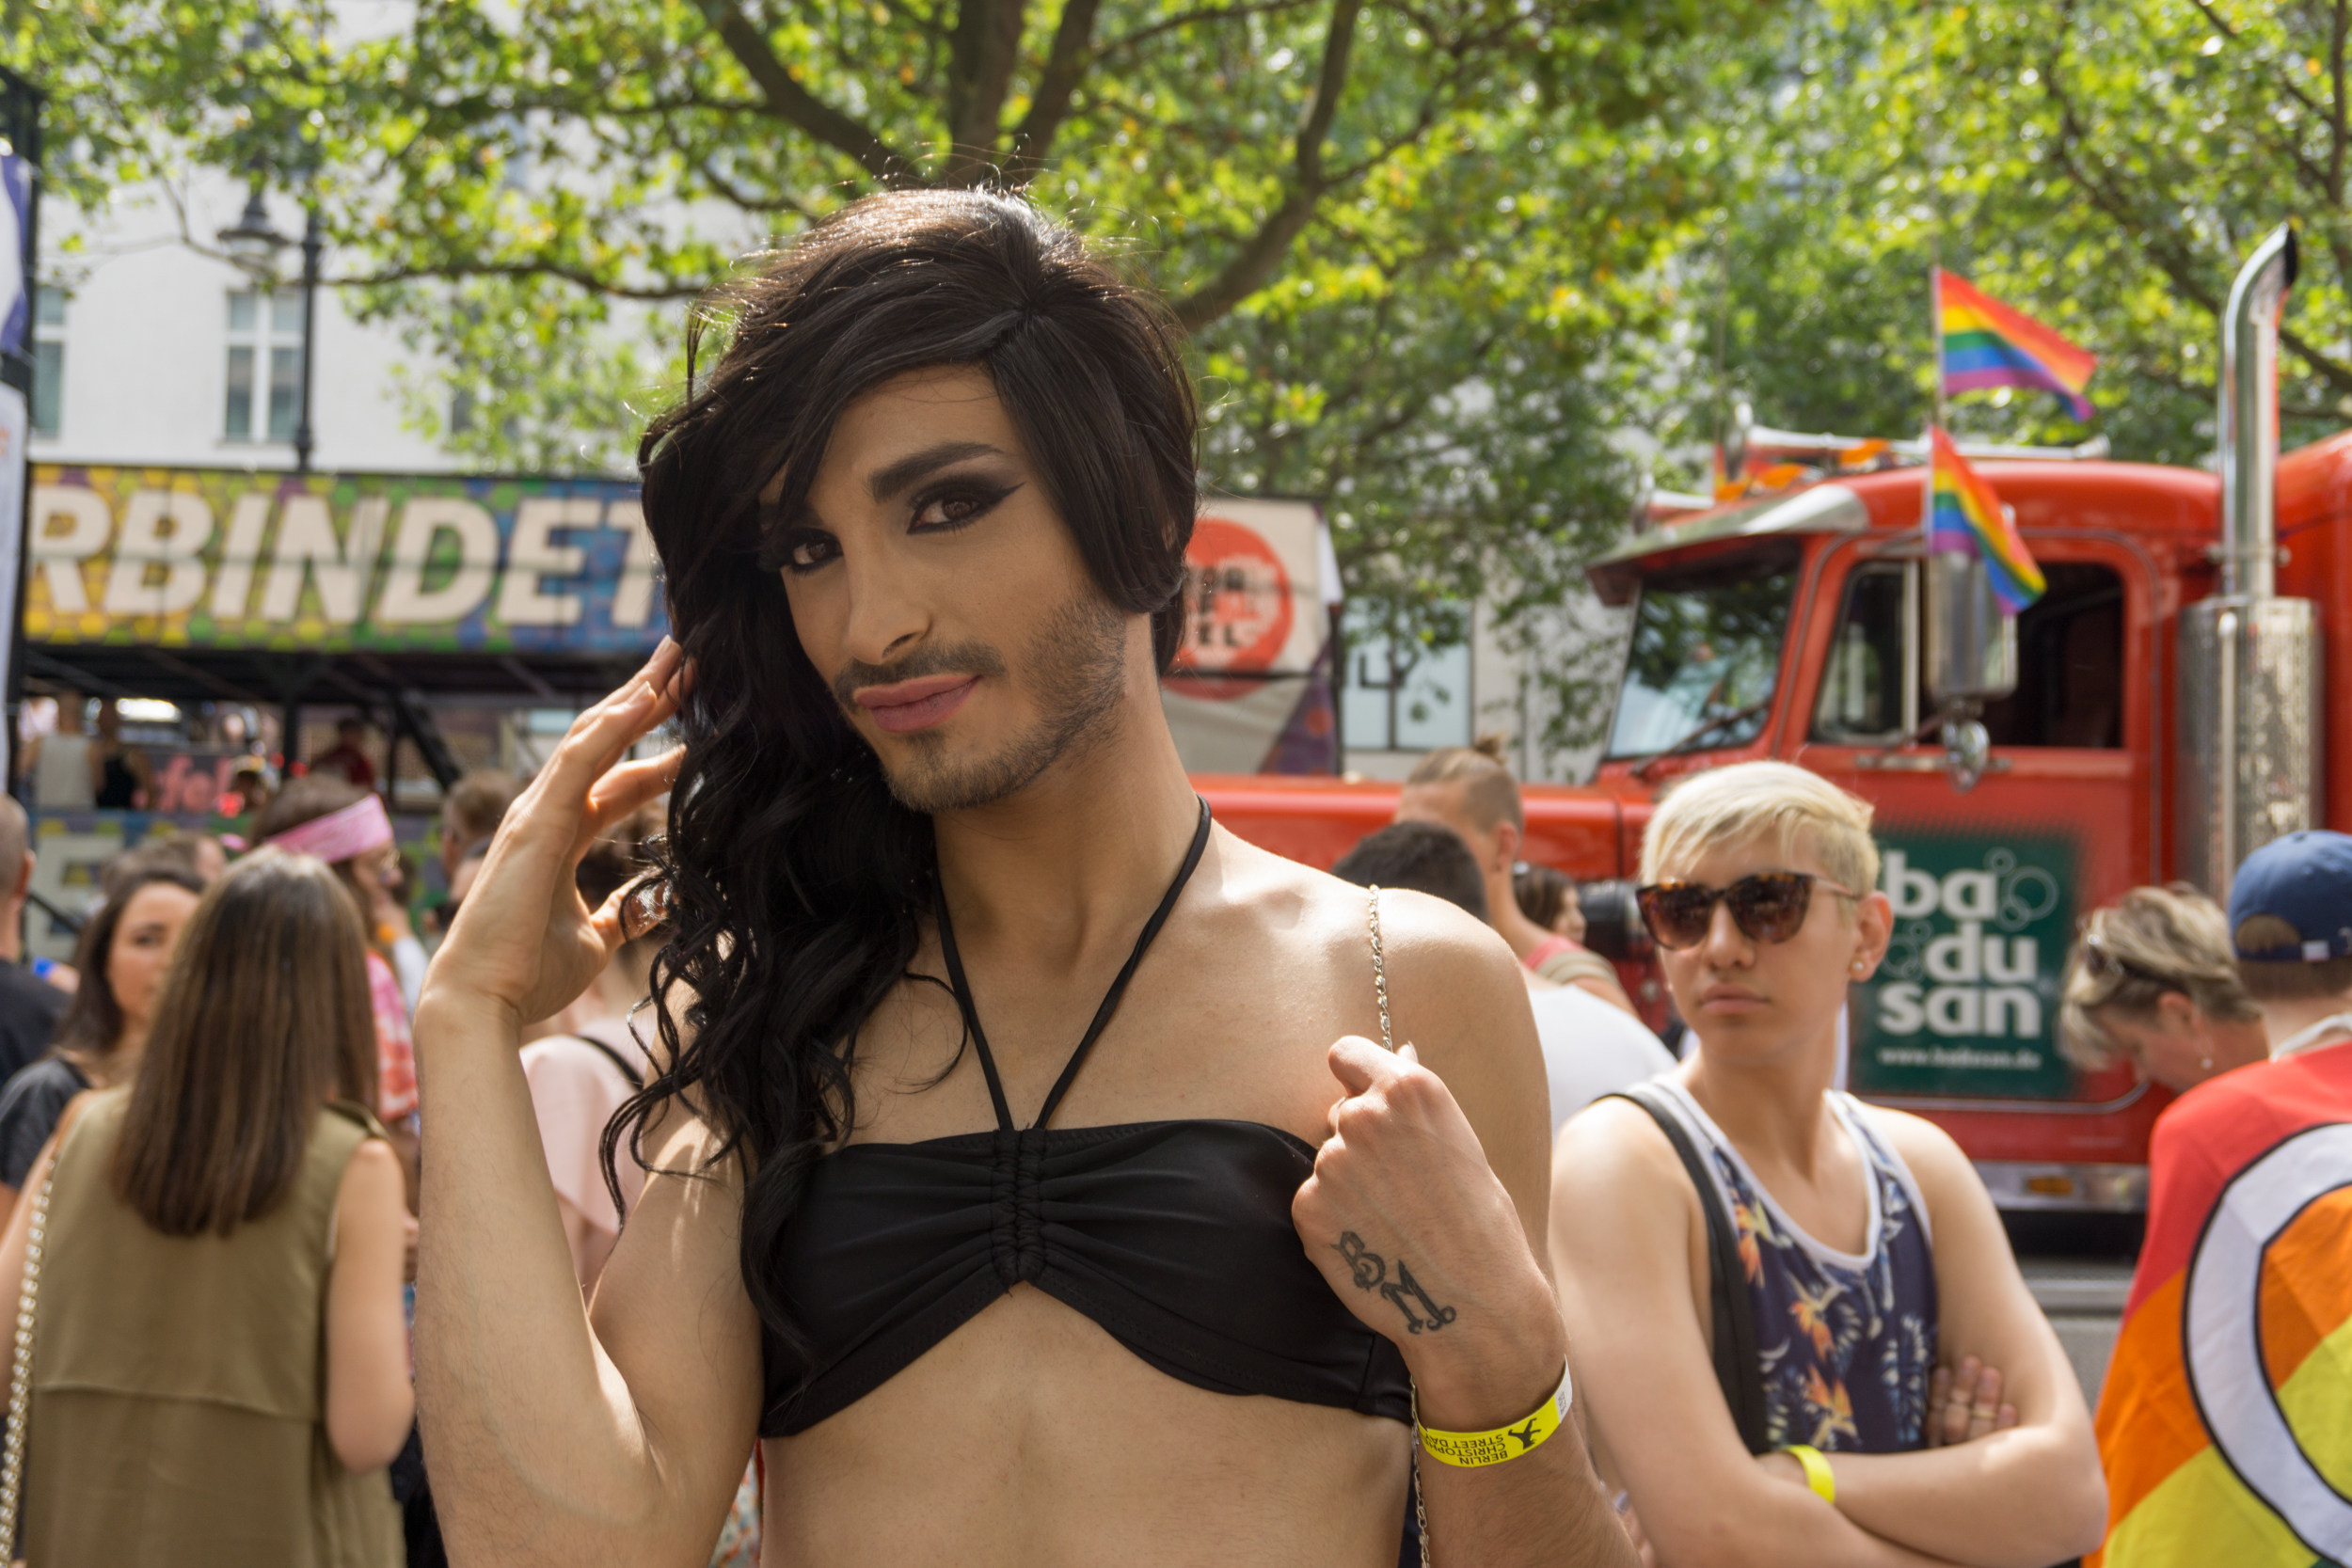 In_Pictures-Berlin_Pride-2